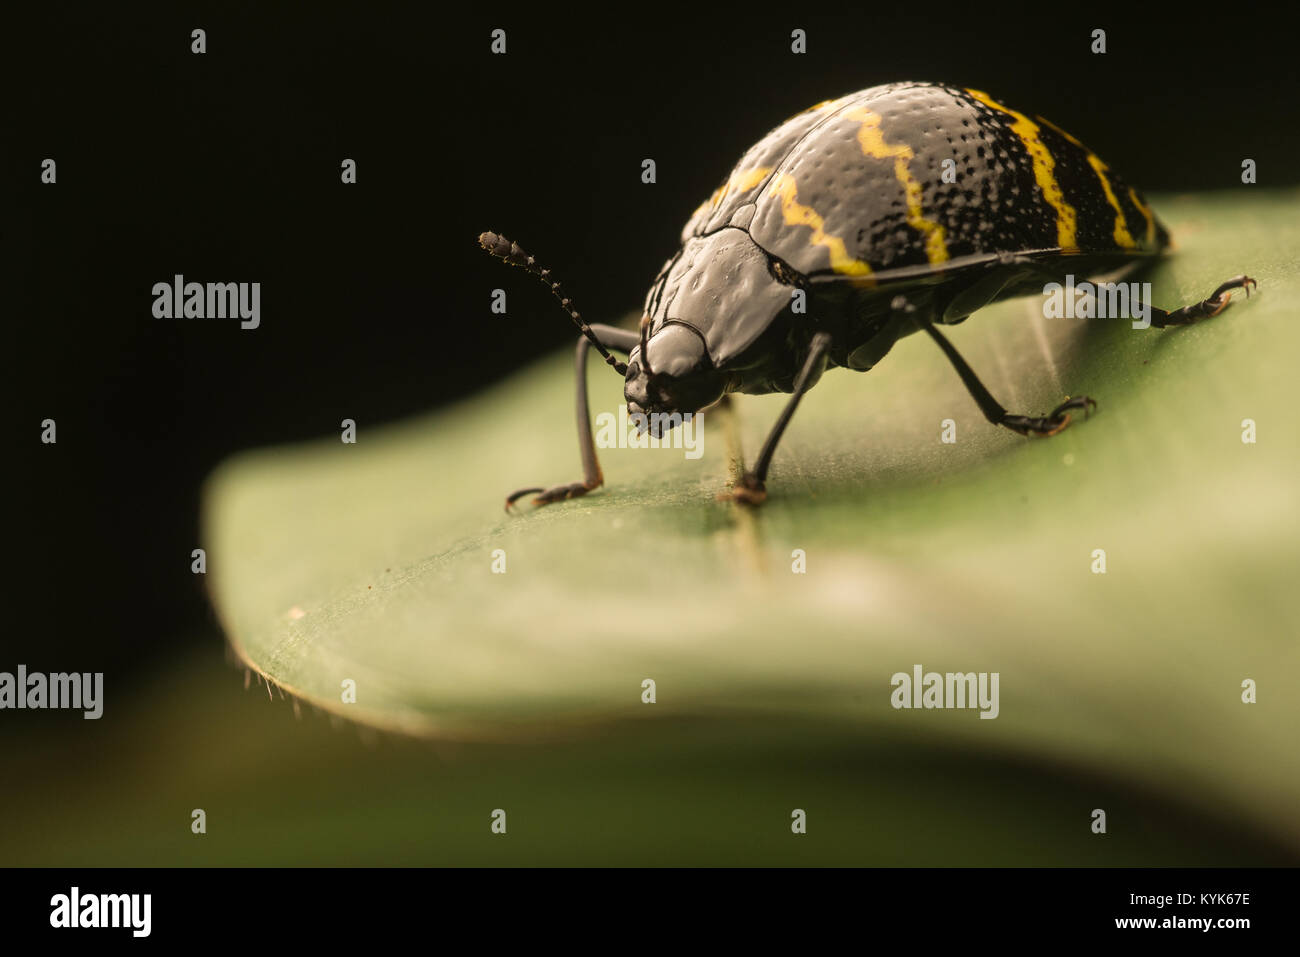 A fungus beetle from the Colombian jungle sitting on a leaf. - Stock Image